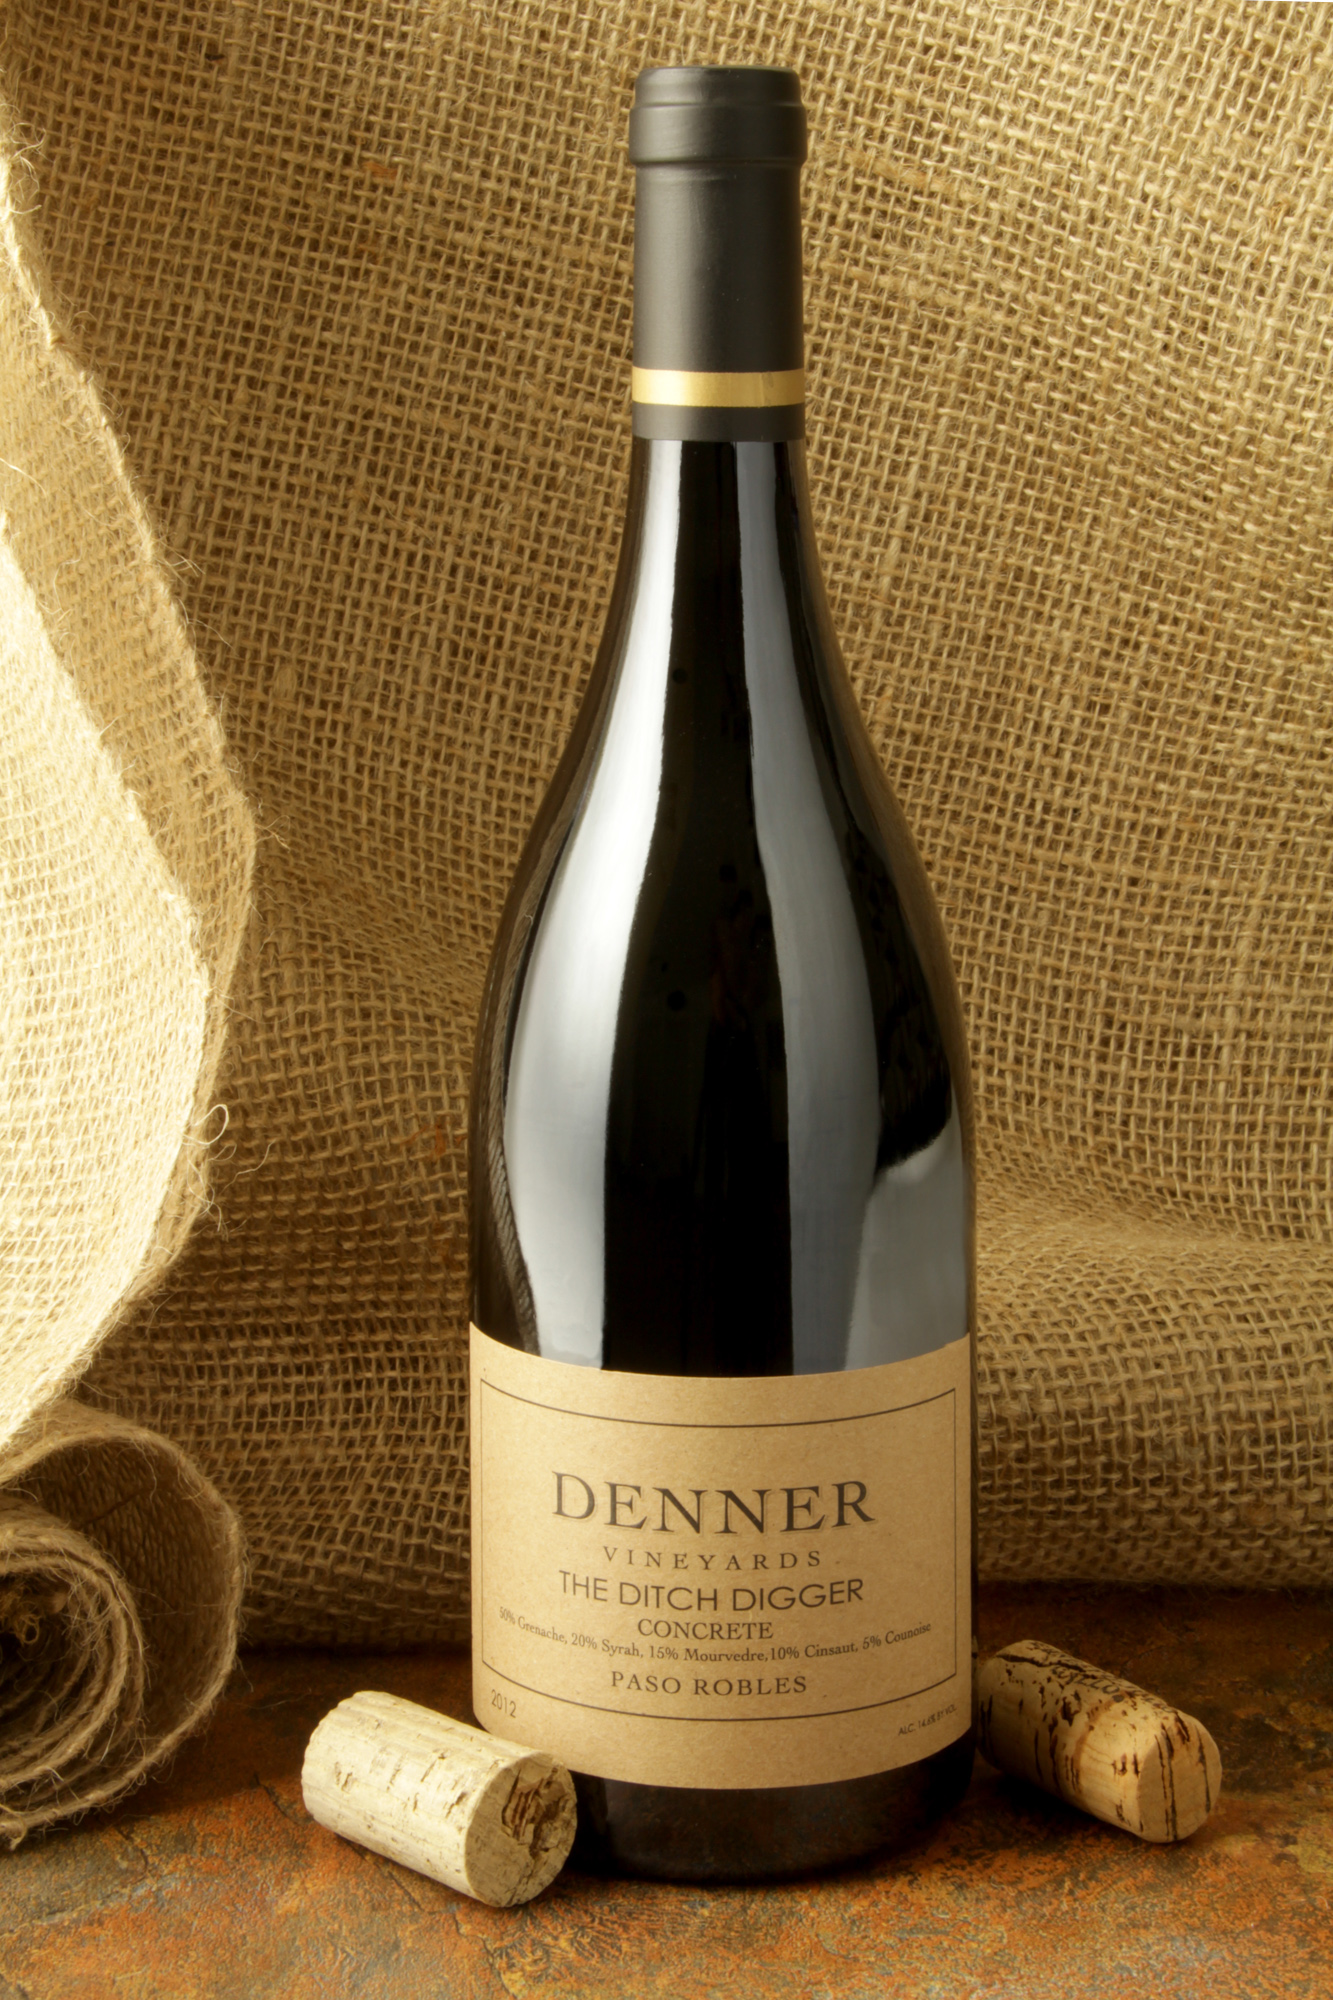 wine bottle denner winery ditch digger stylized